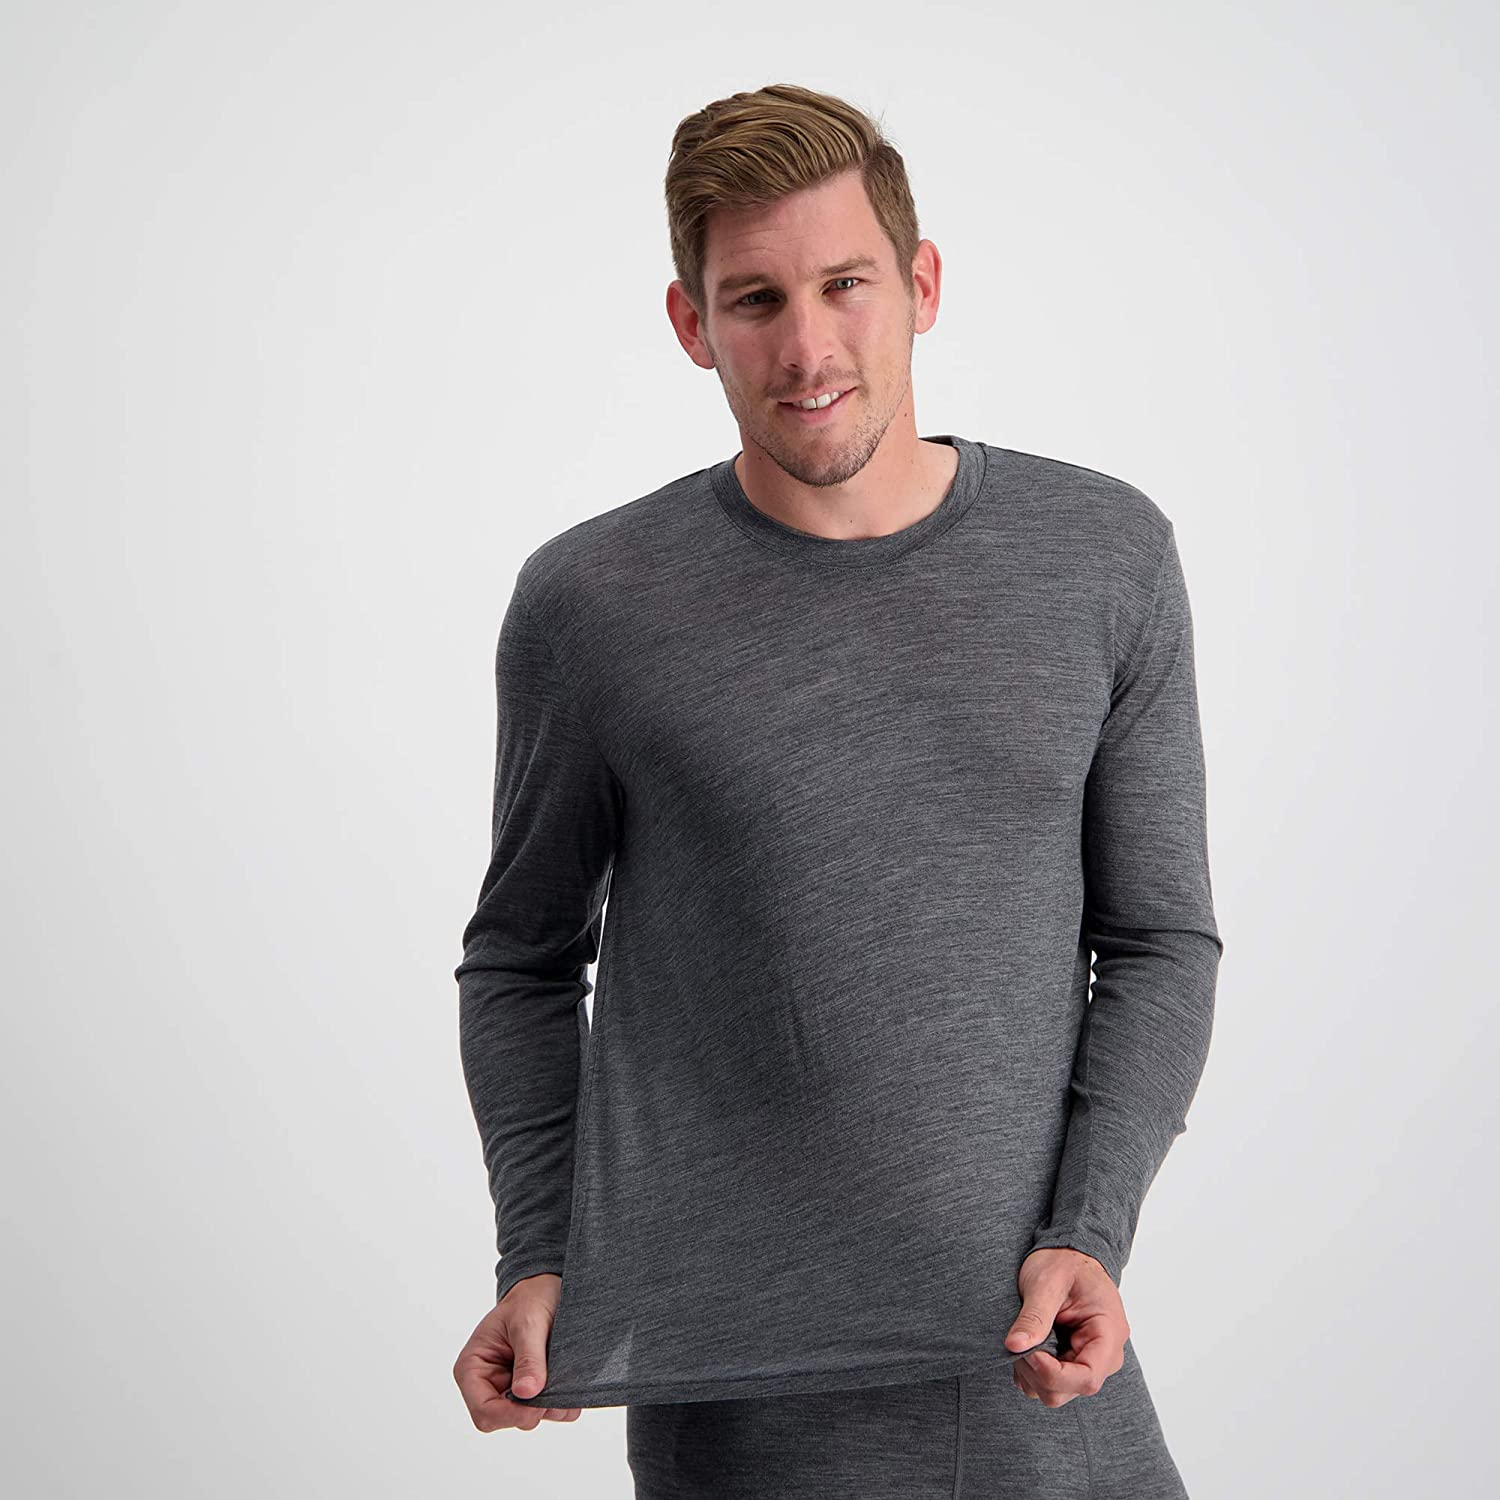 Mens 100/% Pure Soft Merino Thermal Base Layer Wool Top Black or Charcoal